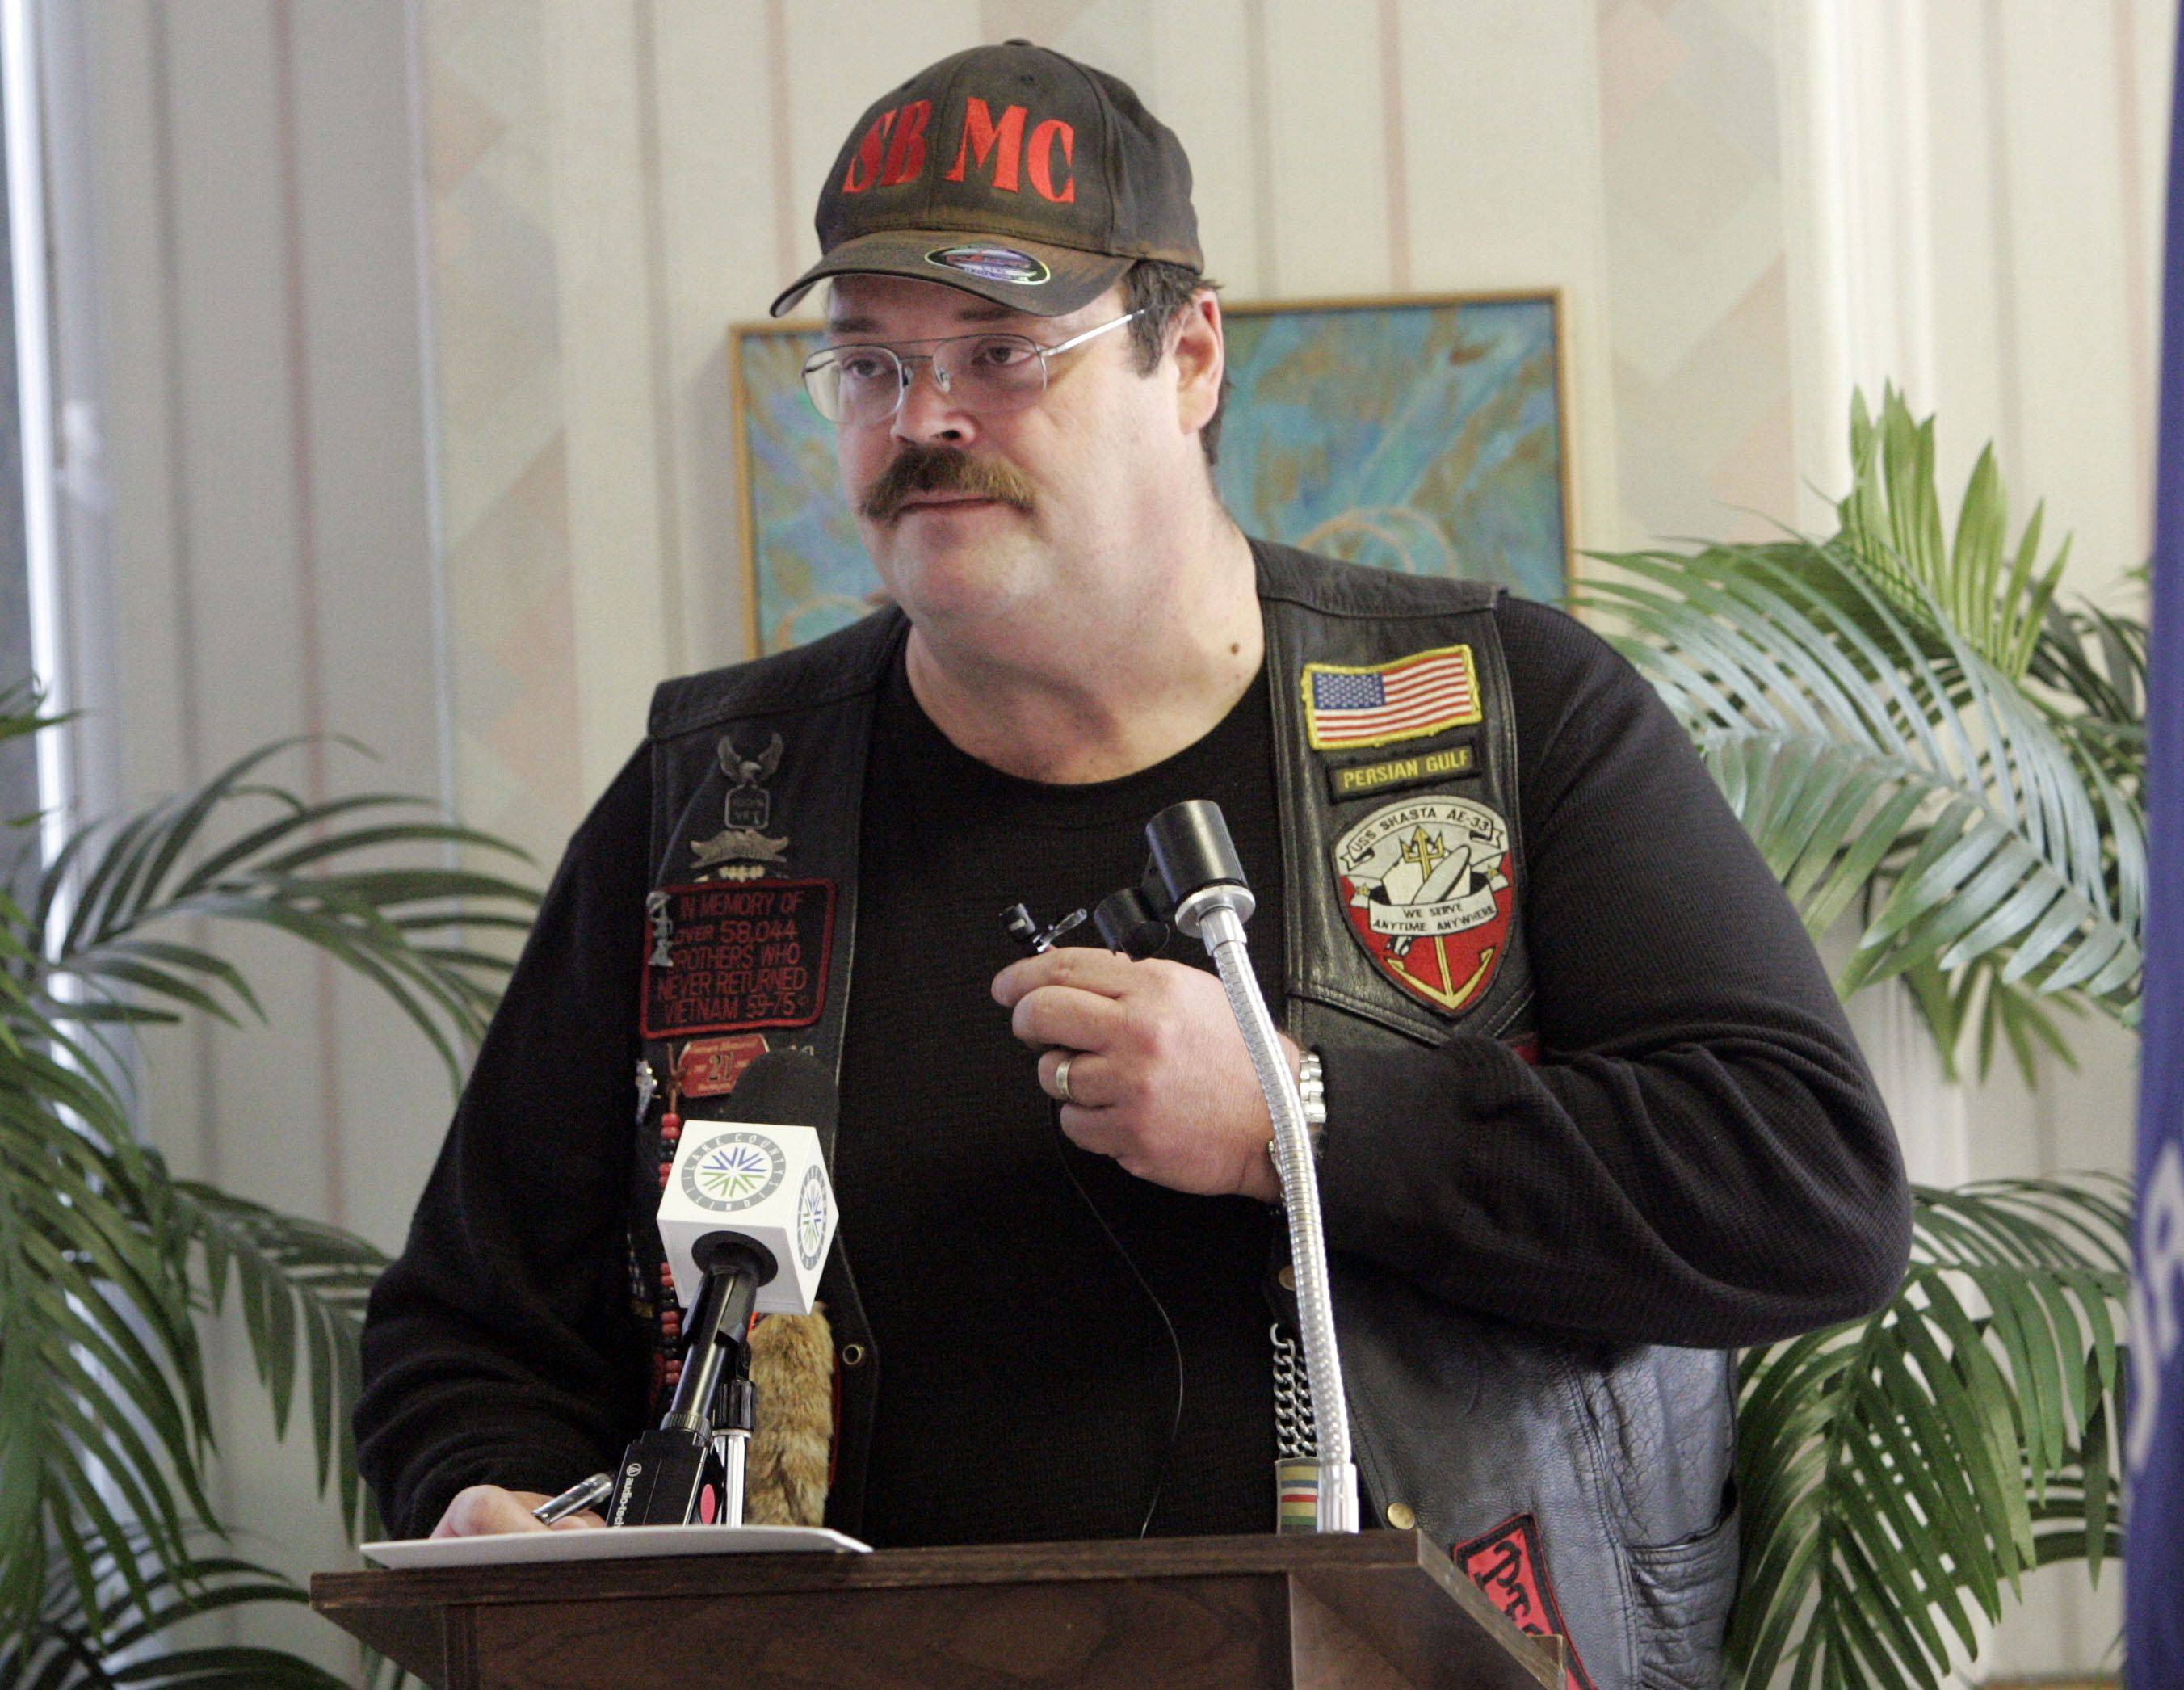 Glen Rabanos of Hainesville says a few words as members of the Second Brigade Motorcycle Club sponsored a breakfast for veterans at Winchester House in Libertyville Thursday.